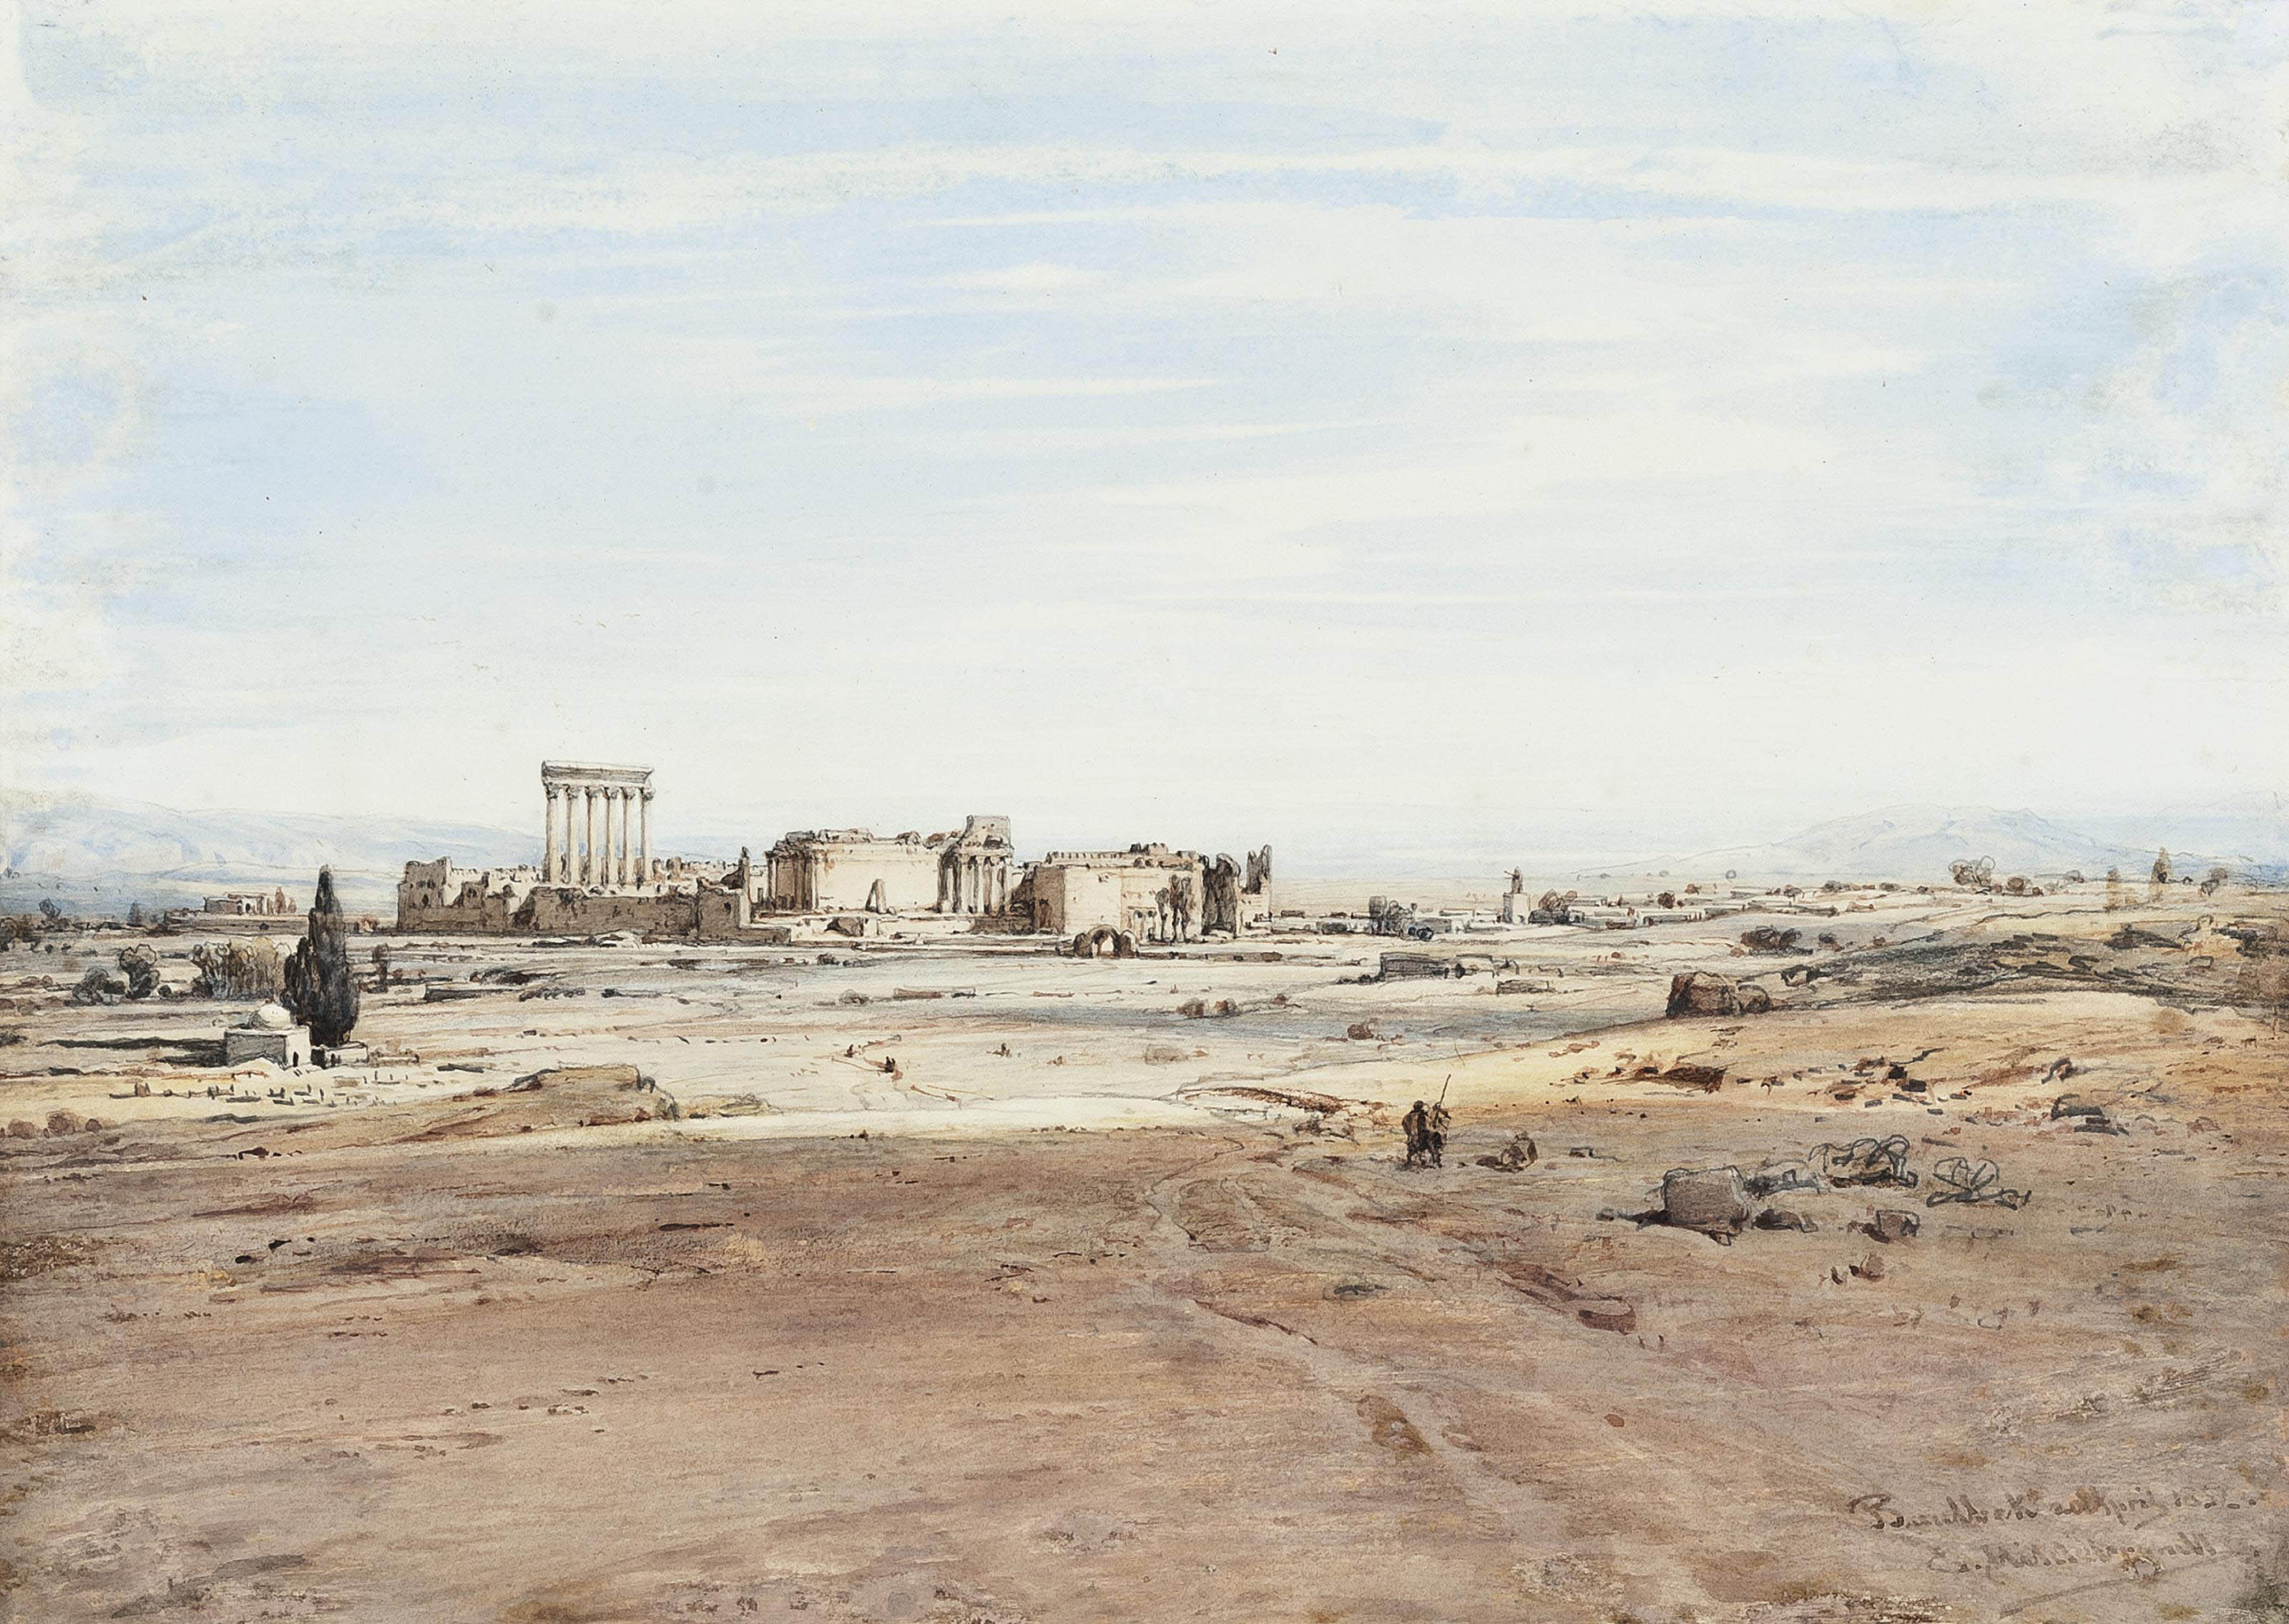 A view of Baalbek in the Lebanon